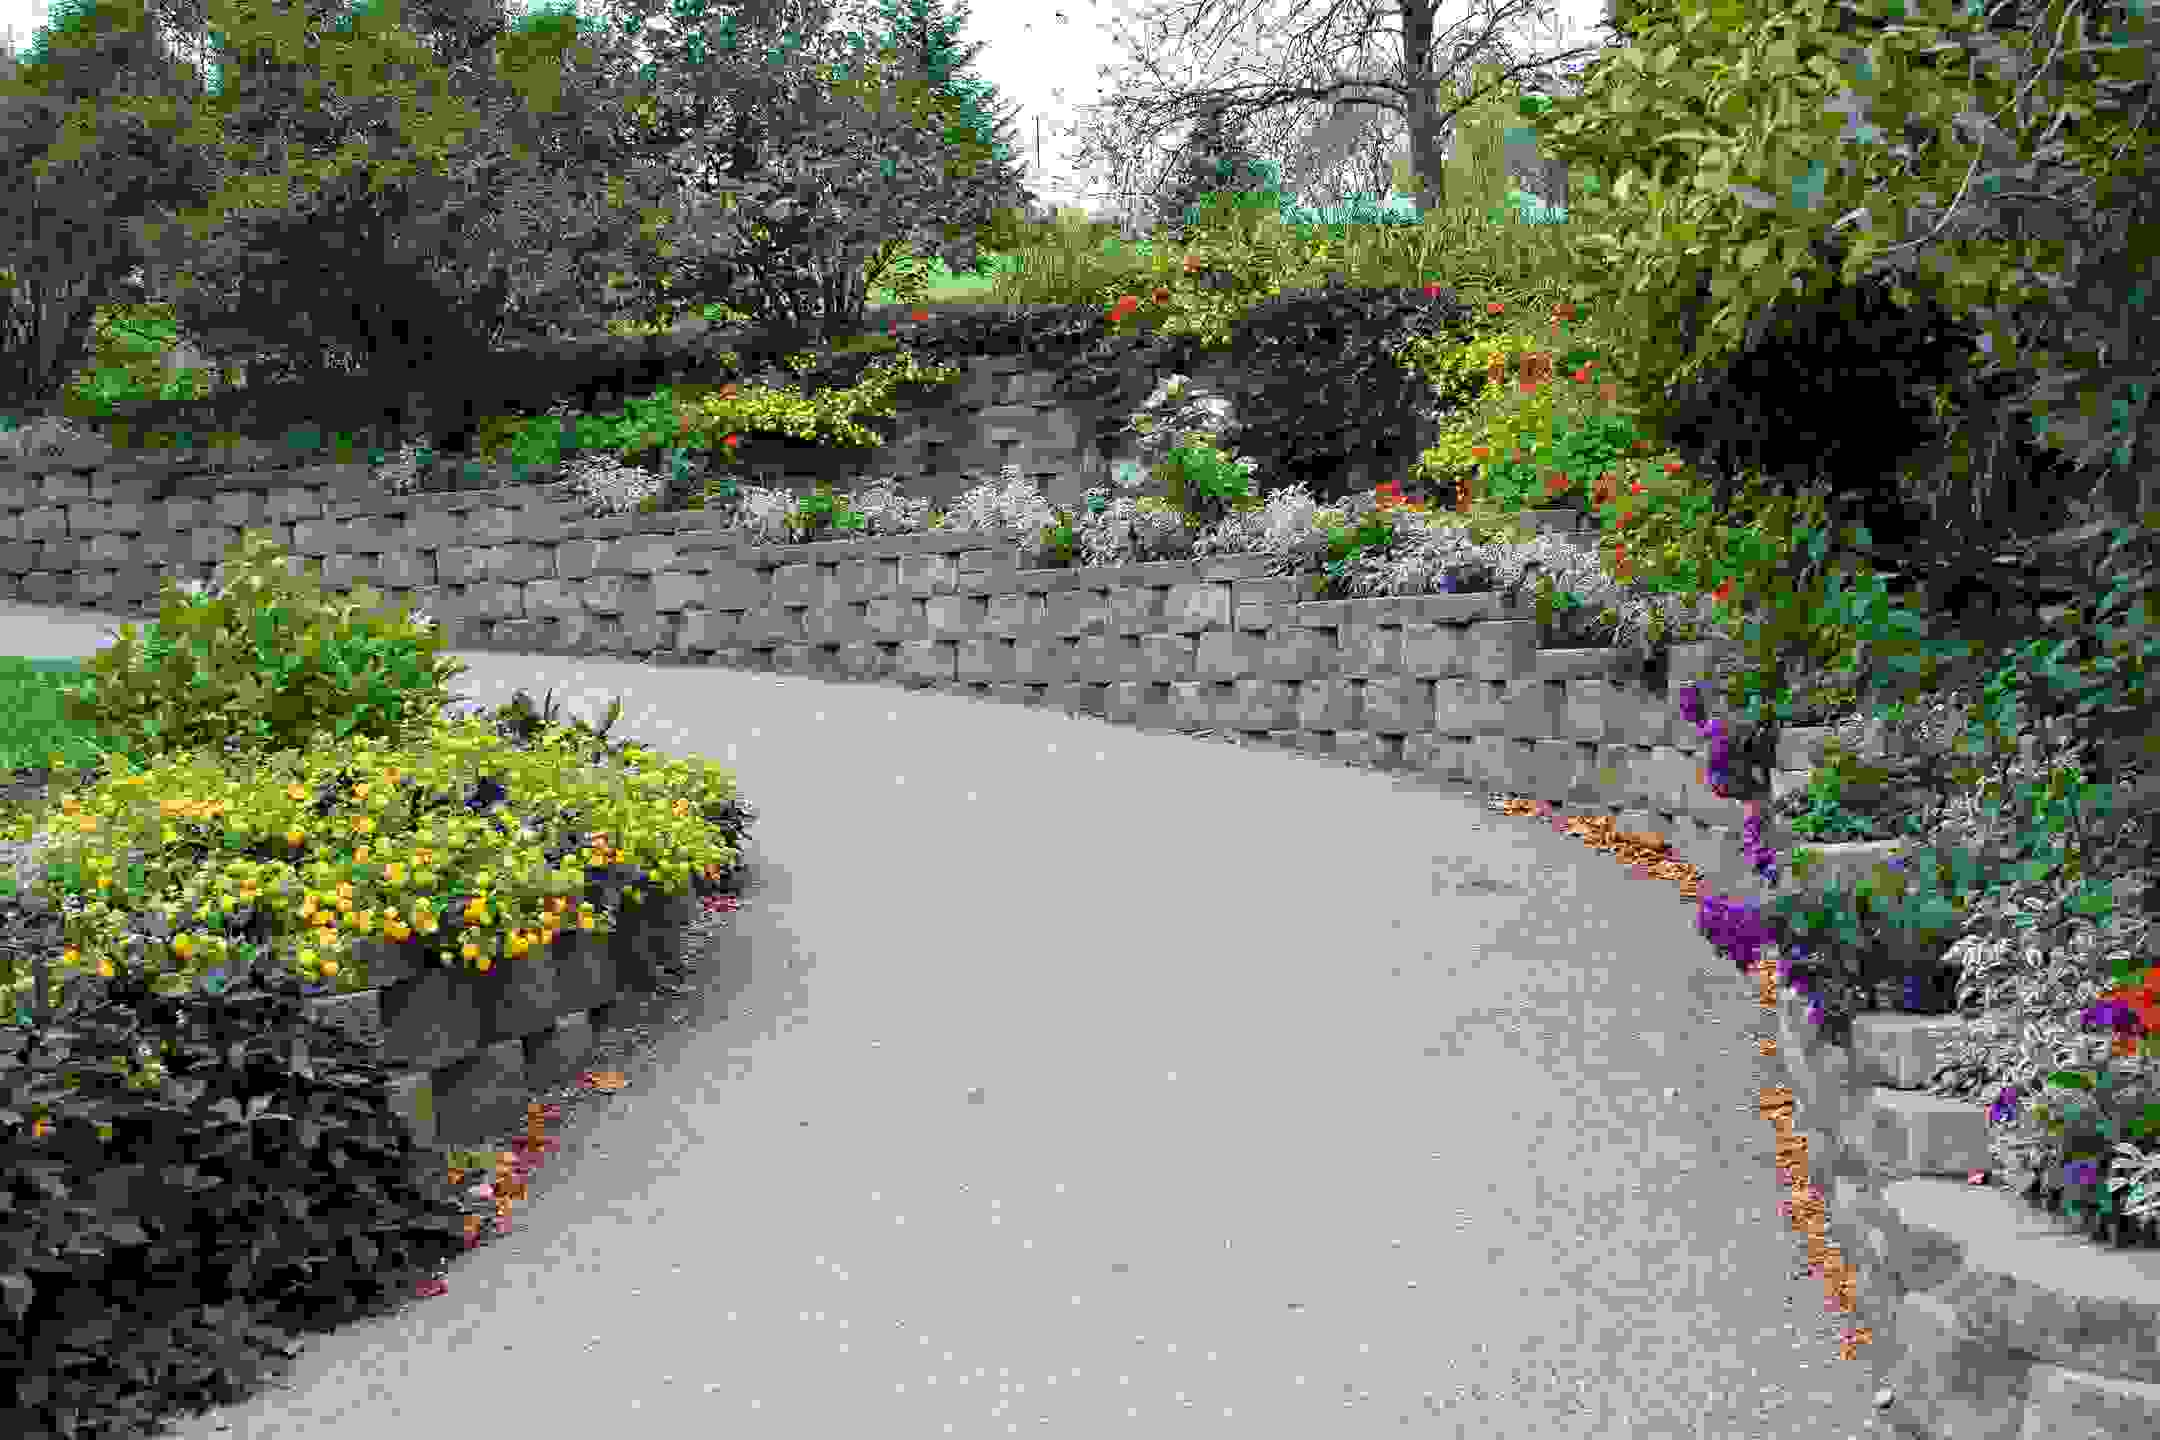 wrap around retaining wall surrounds driveway